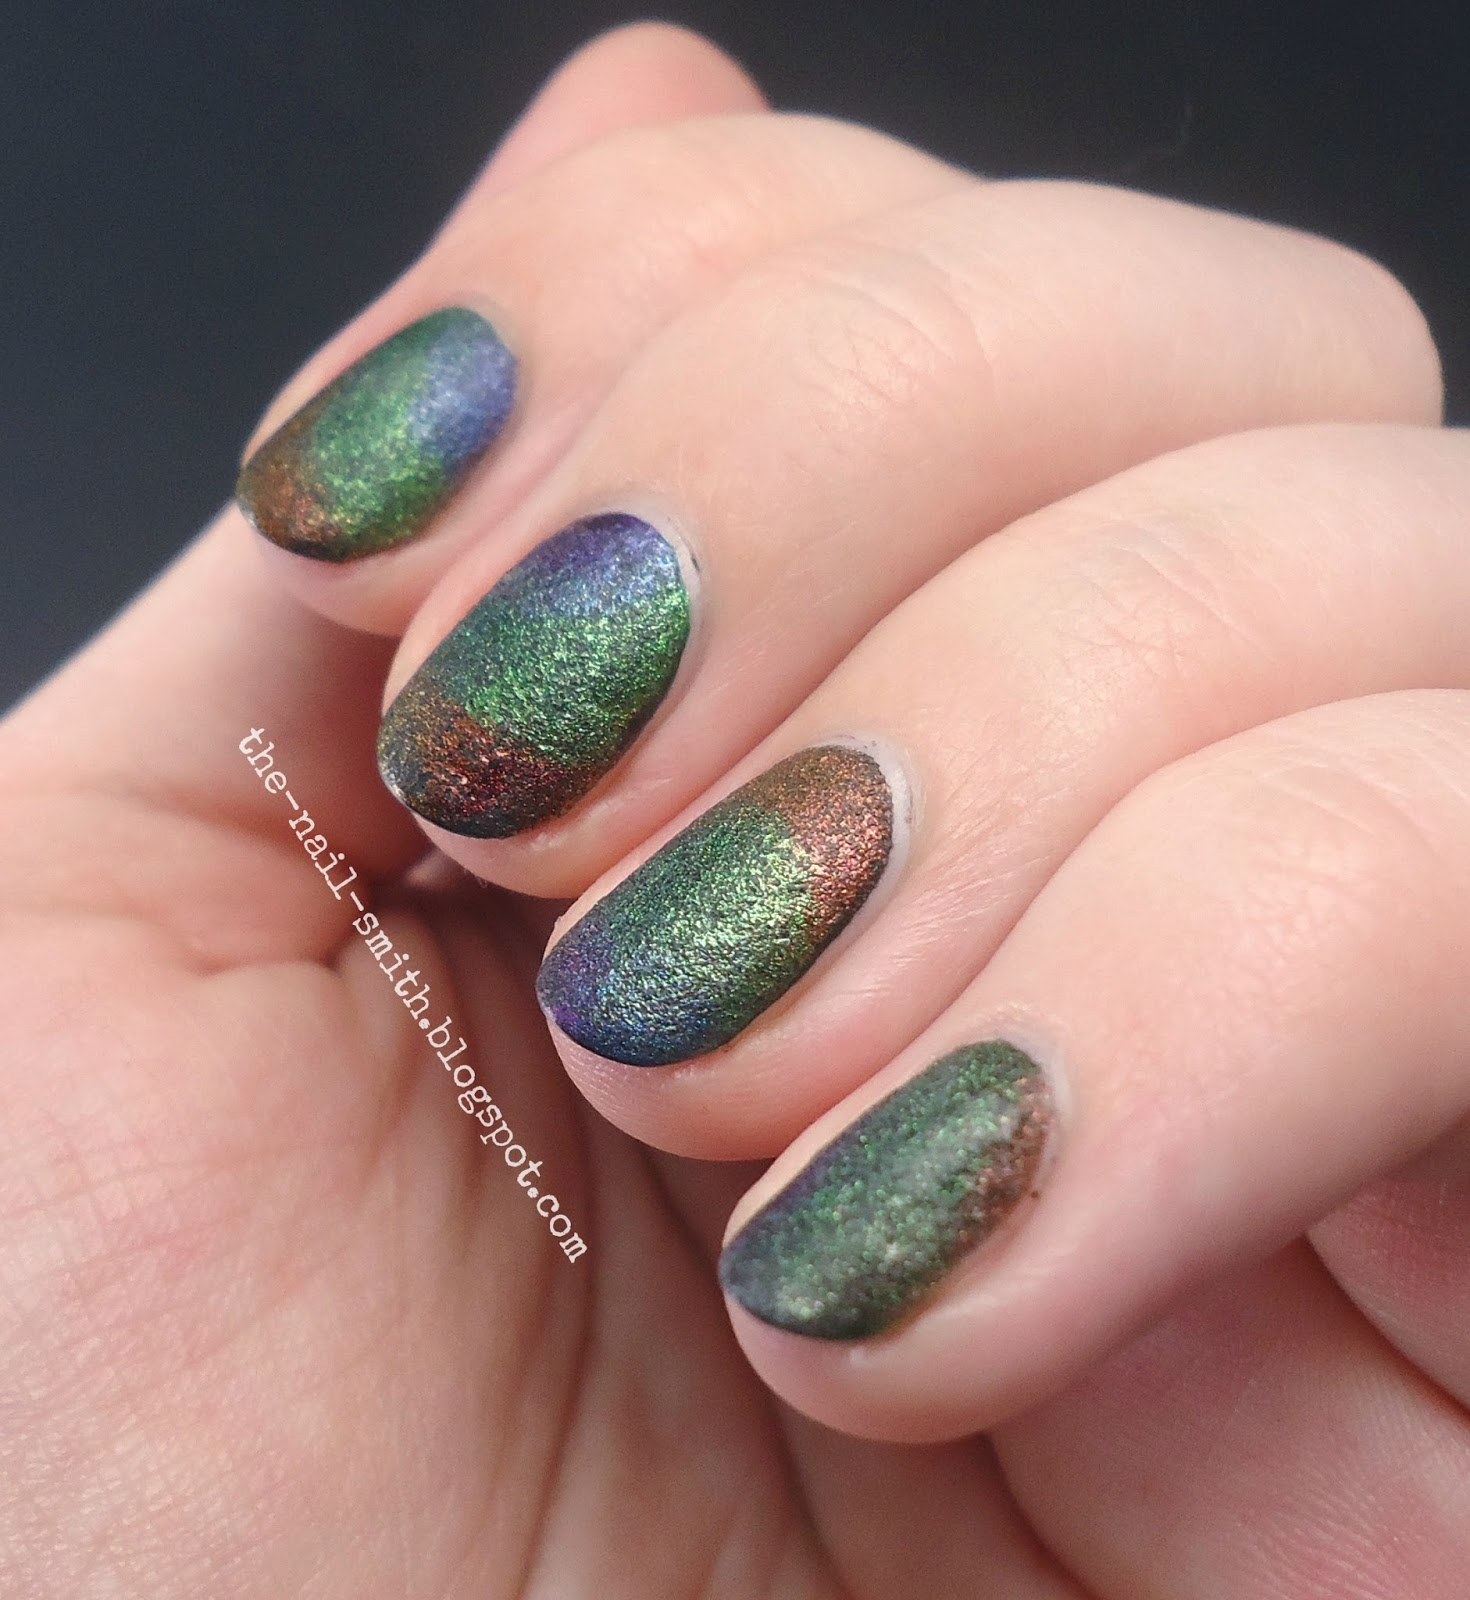 The Nail Smith: Oil Slick, I Guess?